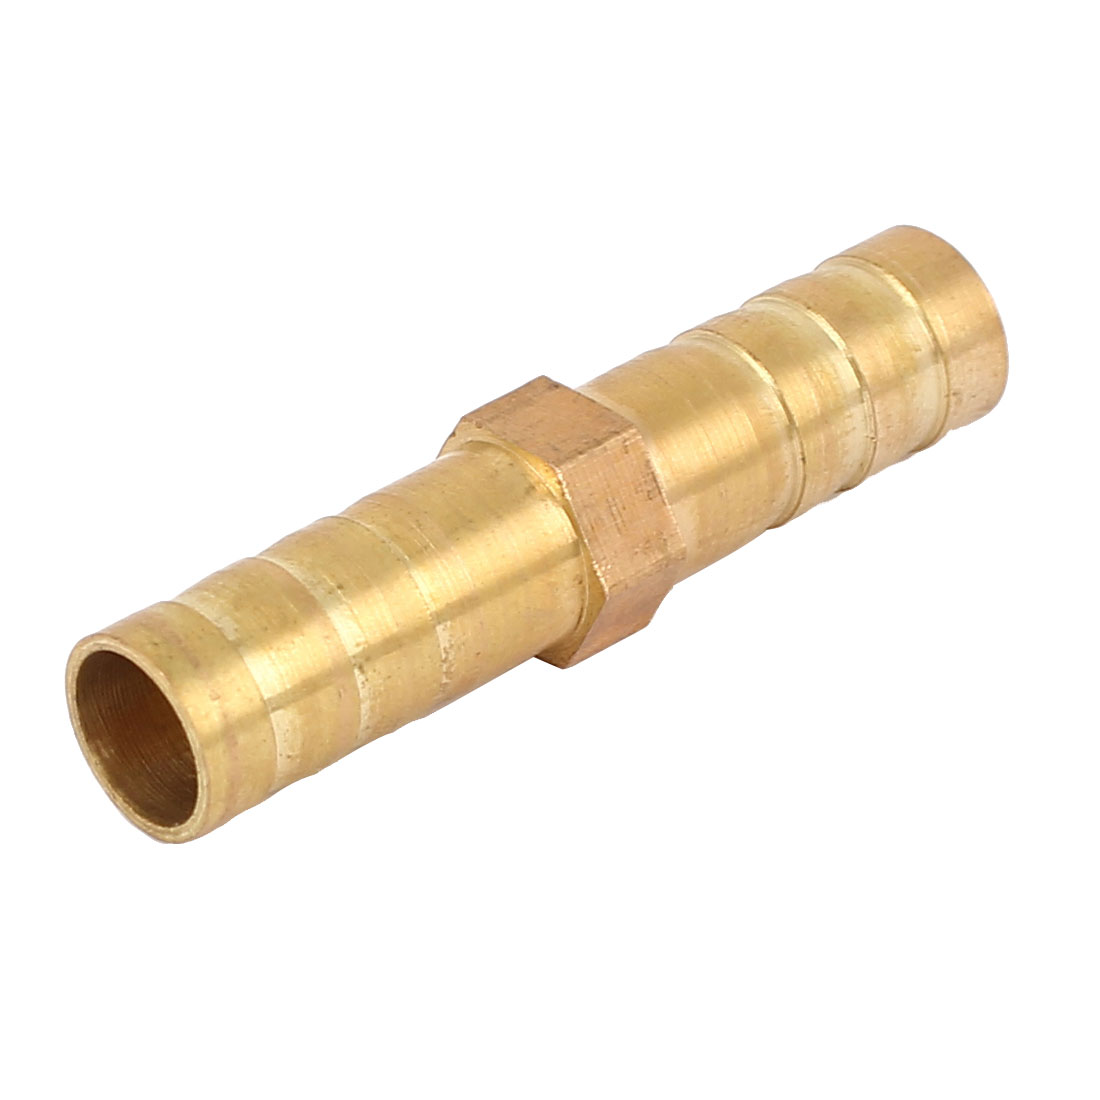 Gas Hose Pipe Fitting Straight Type Barb Connector Gold Tone 8.3mm